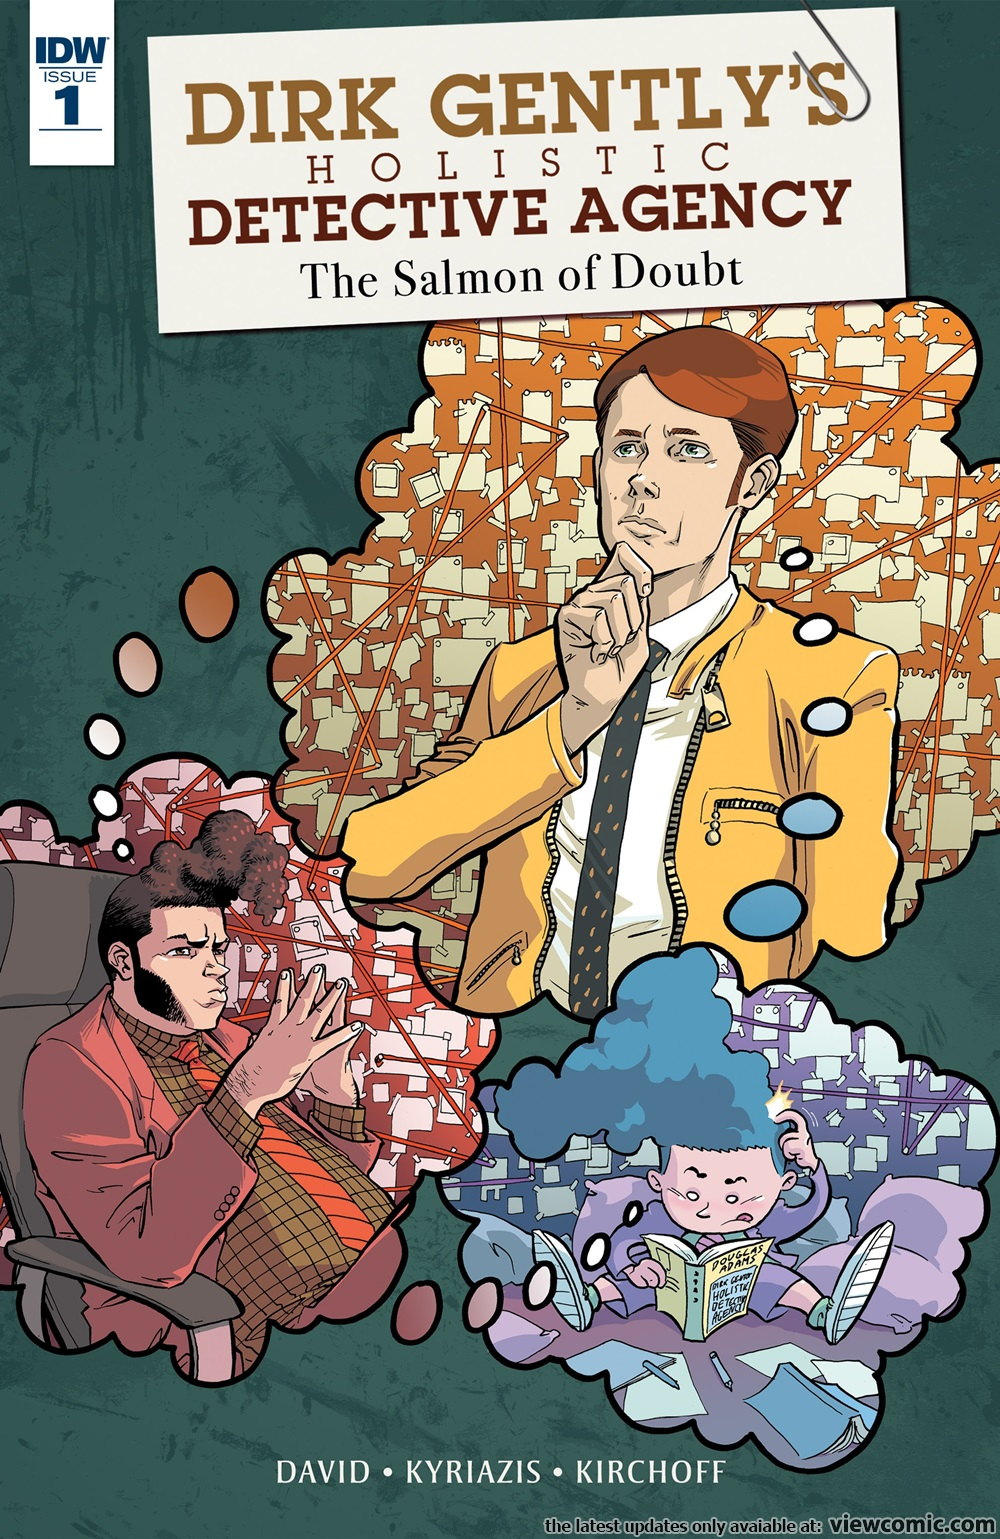 Dirk Gentlys Holistic Detective Agency The Salmon Of Doubt 001 2016 Read Dirk Gentlys Holistic Detective Agency The Salmon Of Doubt 001 2016 Comic Online In High Quality Read Full Comic